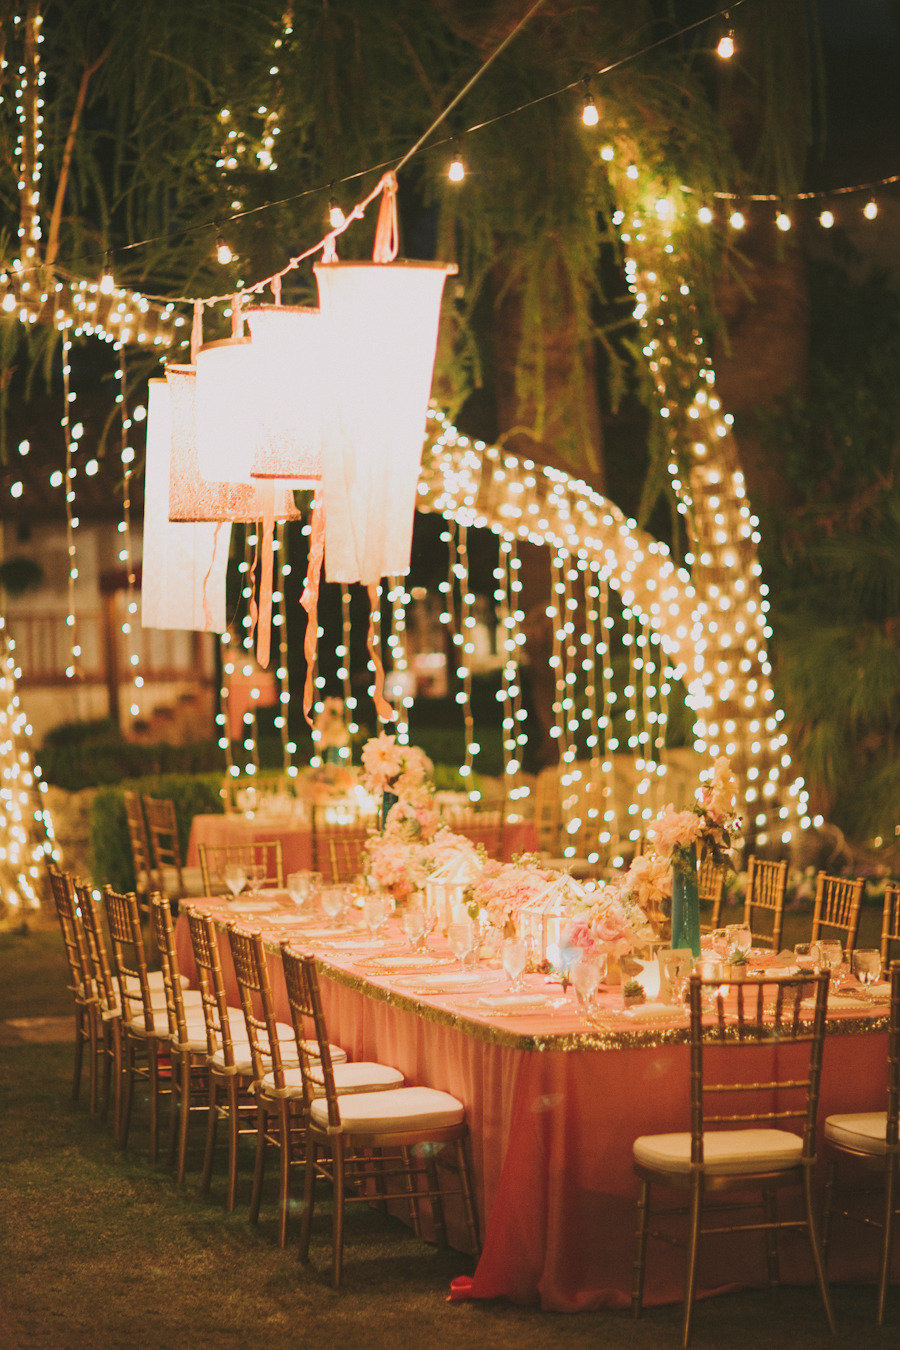 Stylish outdoor wedding reception ideas for Outdoor wedding reception ideas